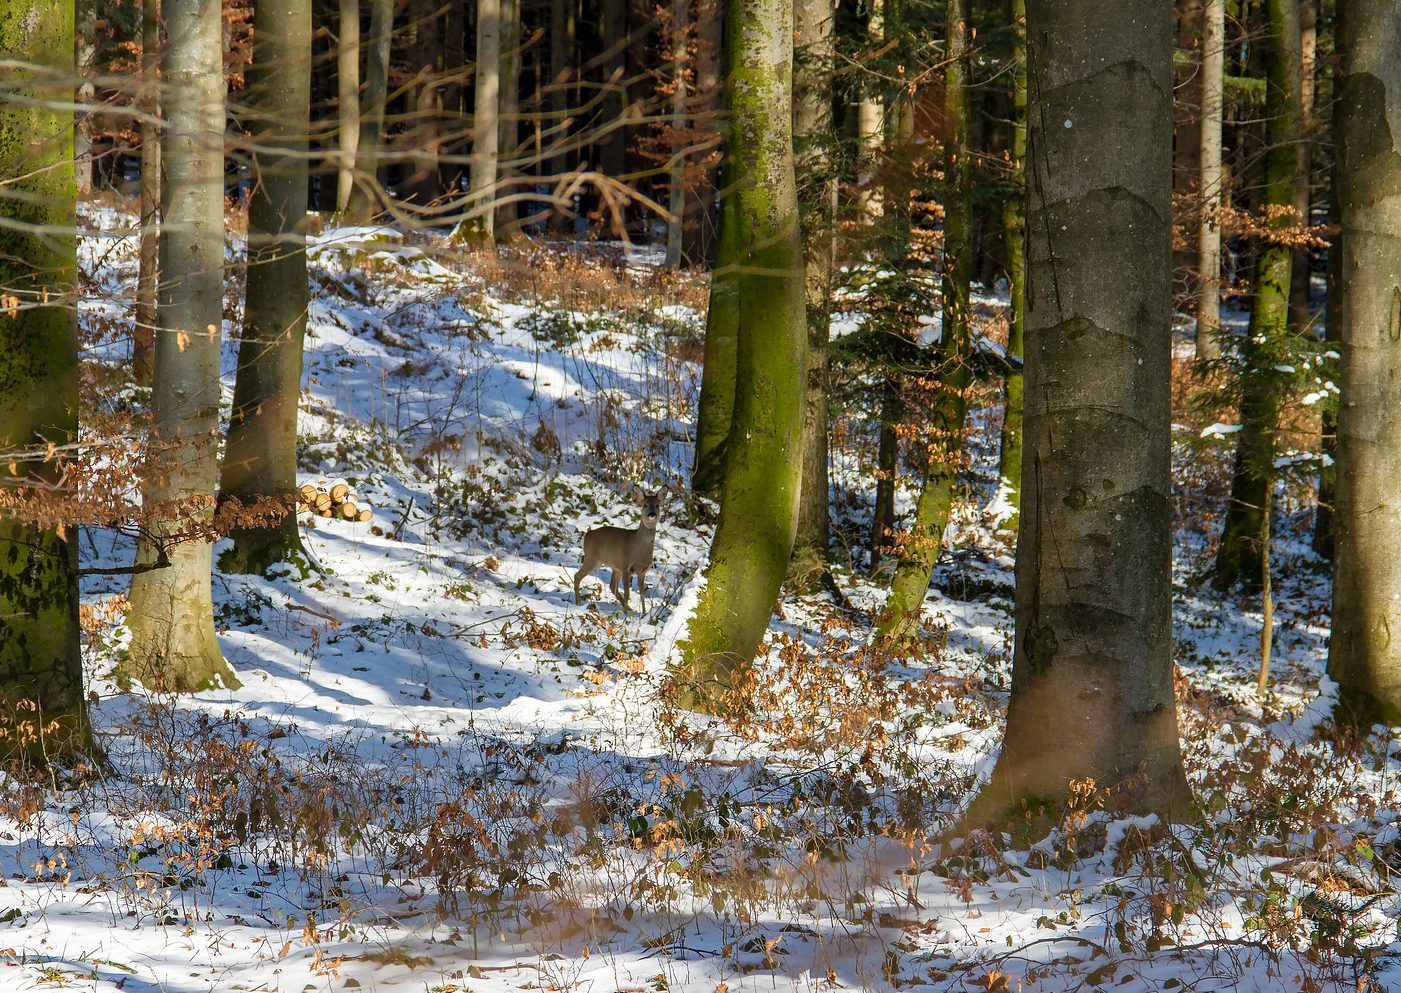 Spruce forest, some snow on the ground and a deer in far sight. Photo.